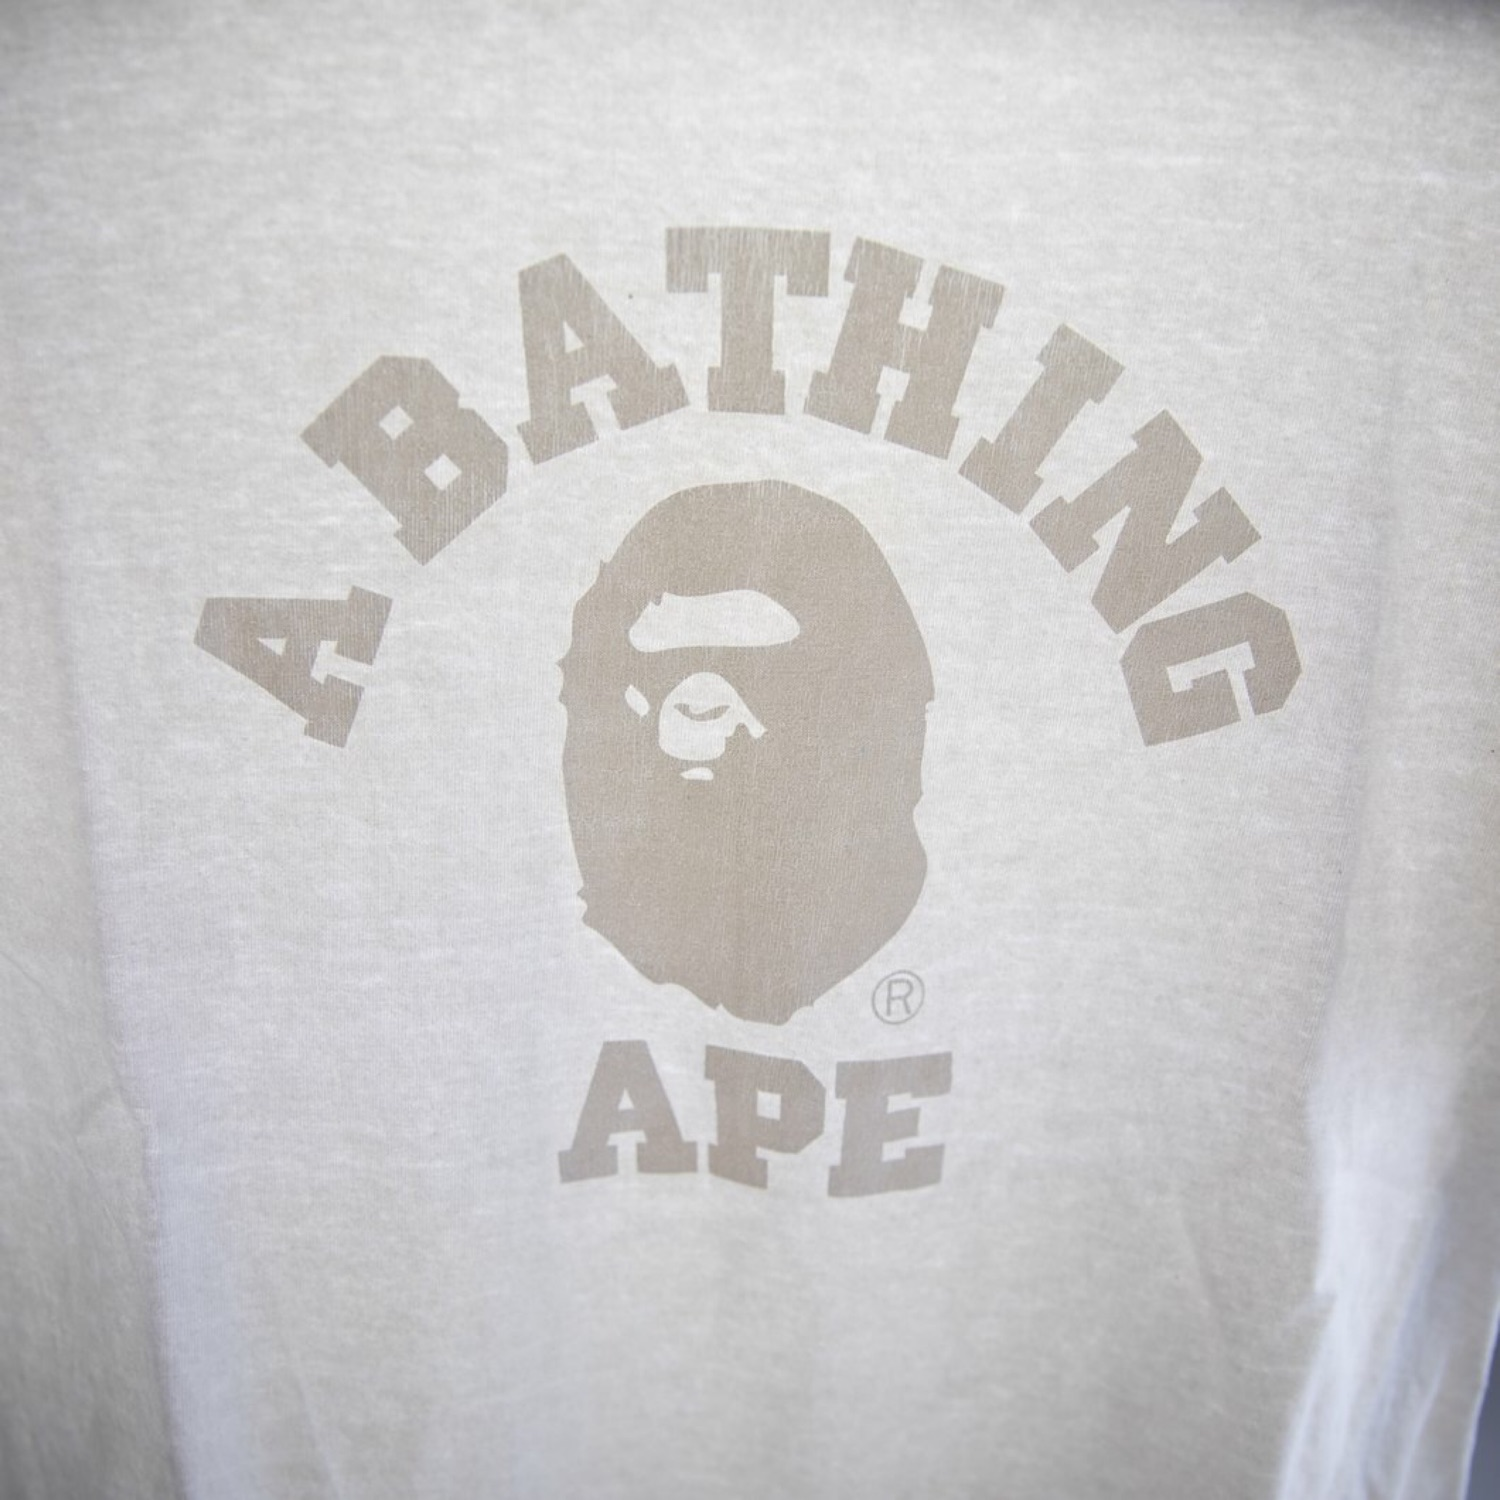 Bape White On White College Tee (Used - M)